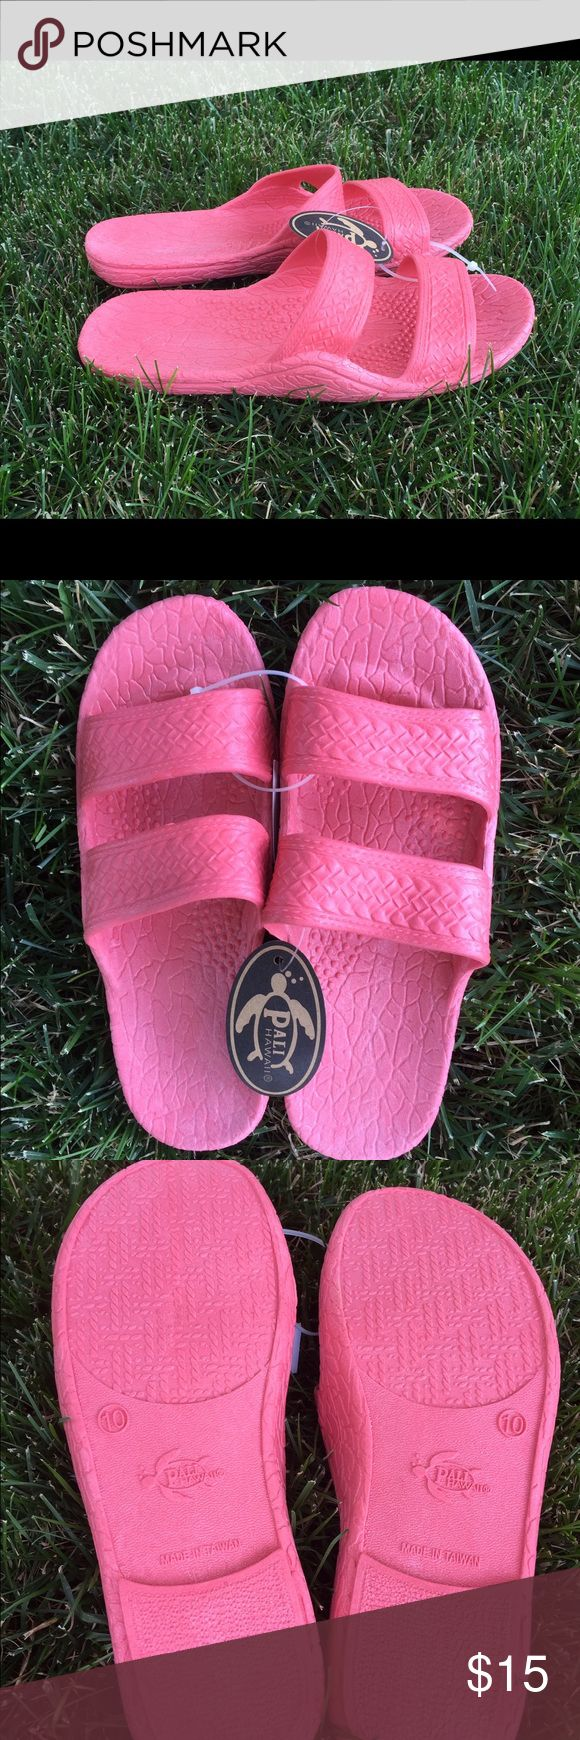 Authentic Original Pali Hawaii Sandals, Jandals BRAND NEW, with tags still on! Adorable pink Jandals! These are the most comfortable shoes you will ever wear! Waterproof and they float! We have lots to choose from. Sizes 6-10. Pali Hawaii Shoes Sandals